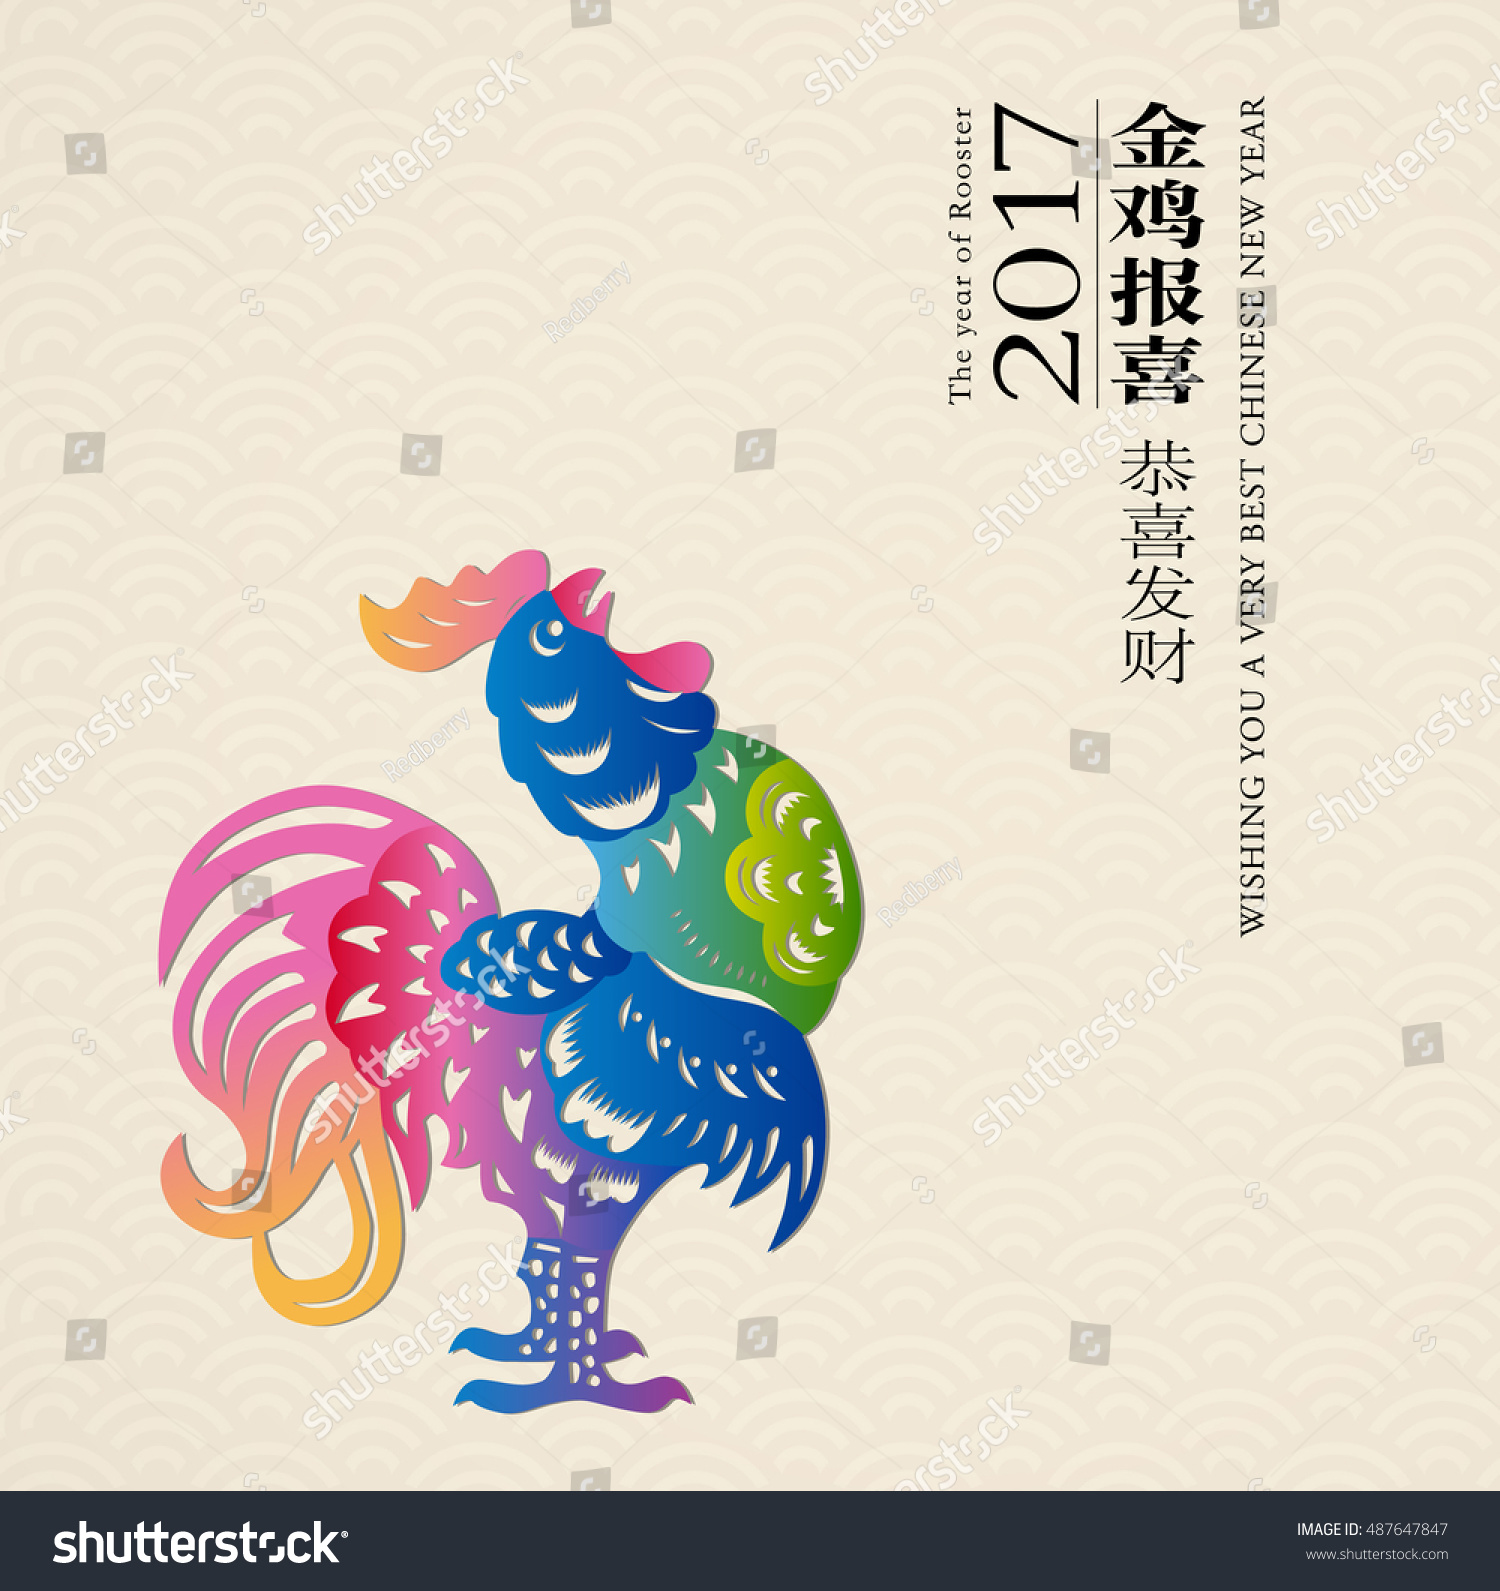 year rooster chinese new year design stock vector 487647847